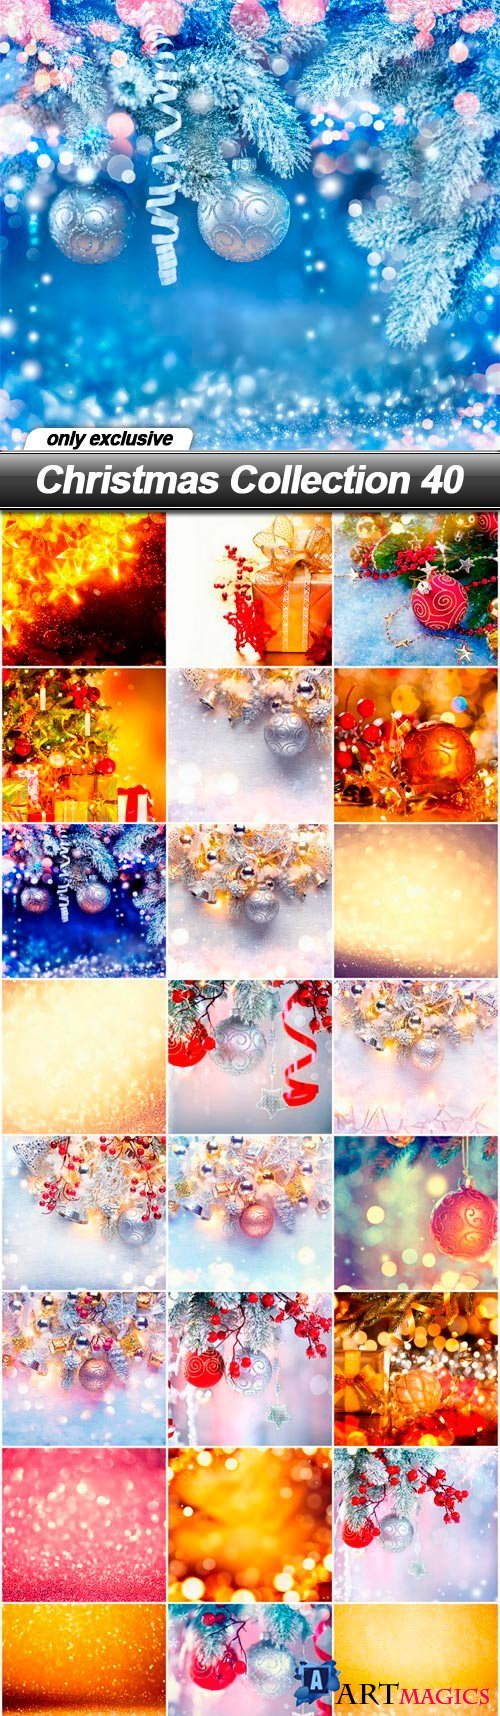 Christmas Collection 40 - 25 UHQ JPEG